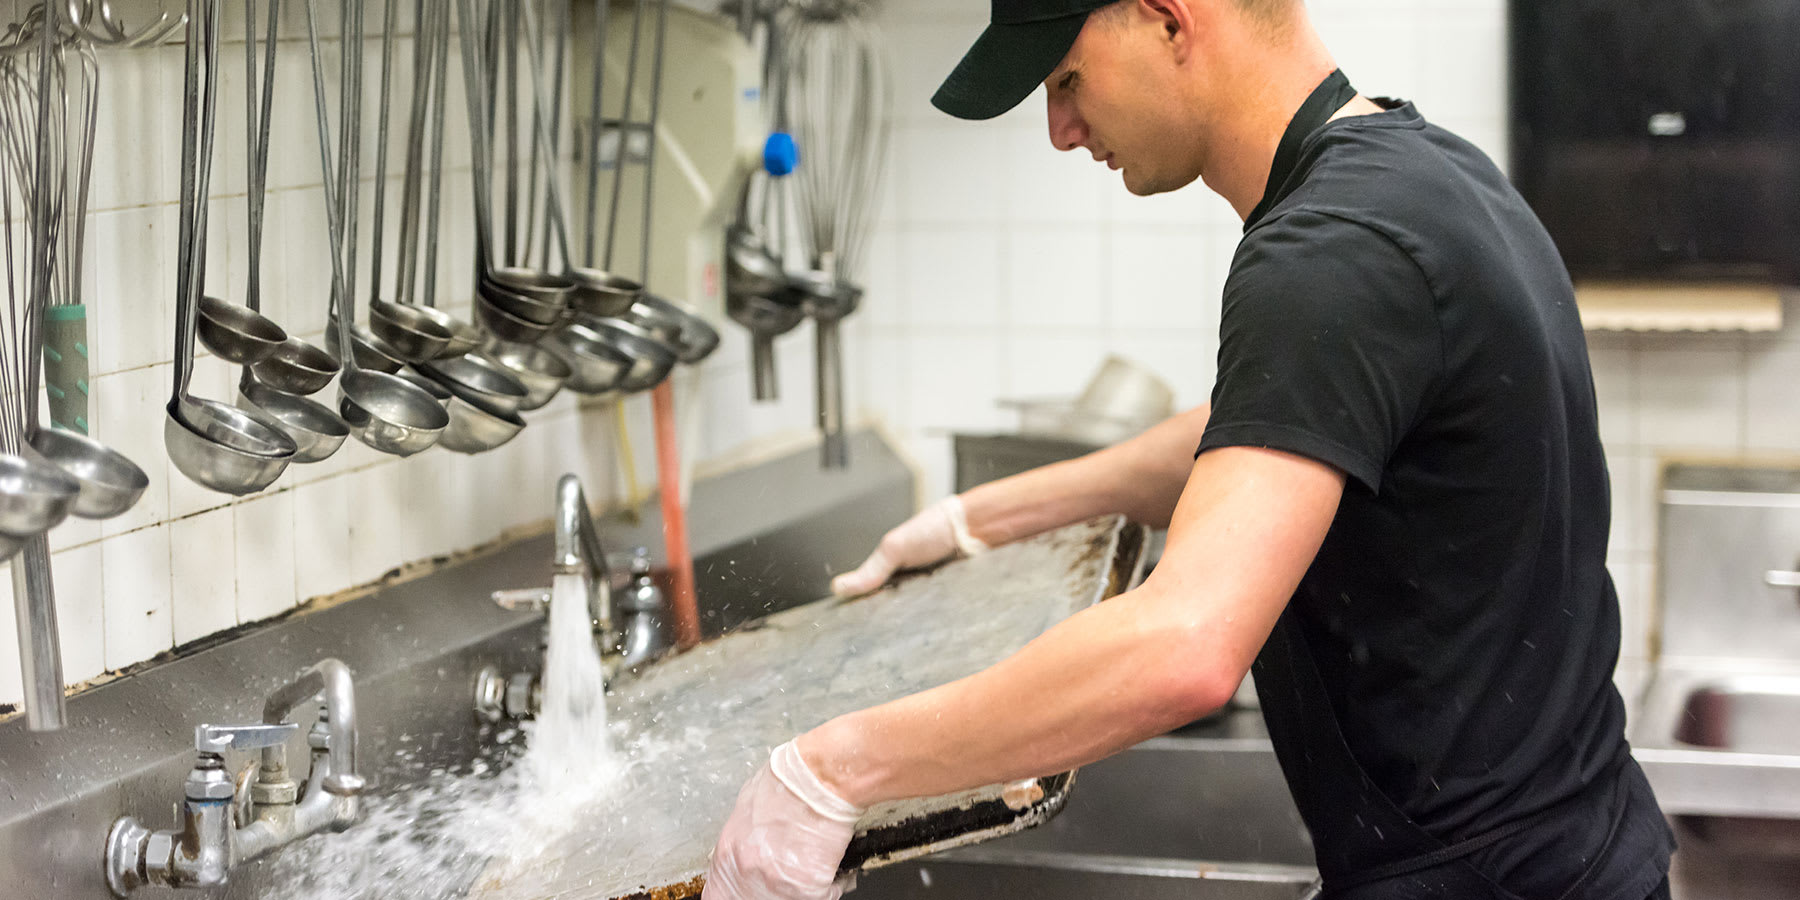 Man washing large baking sheet in the sink of a commercial kitchen.